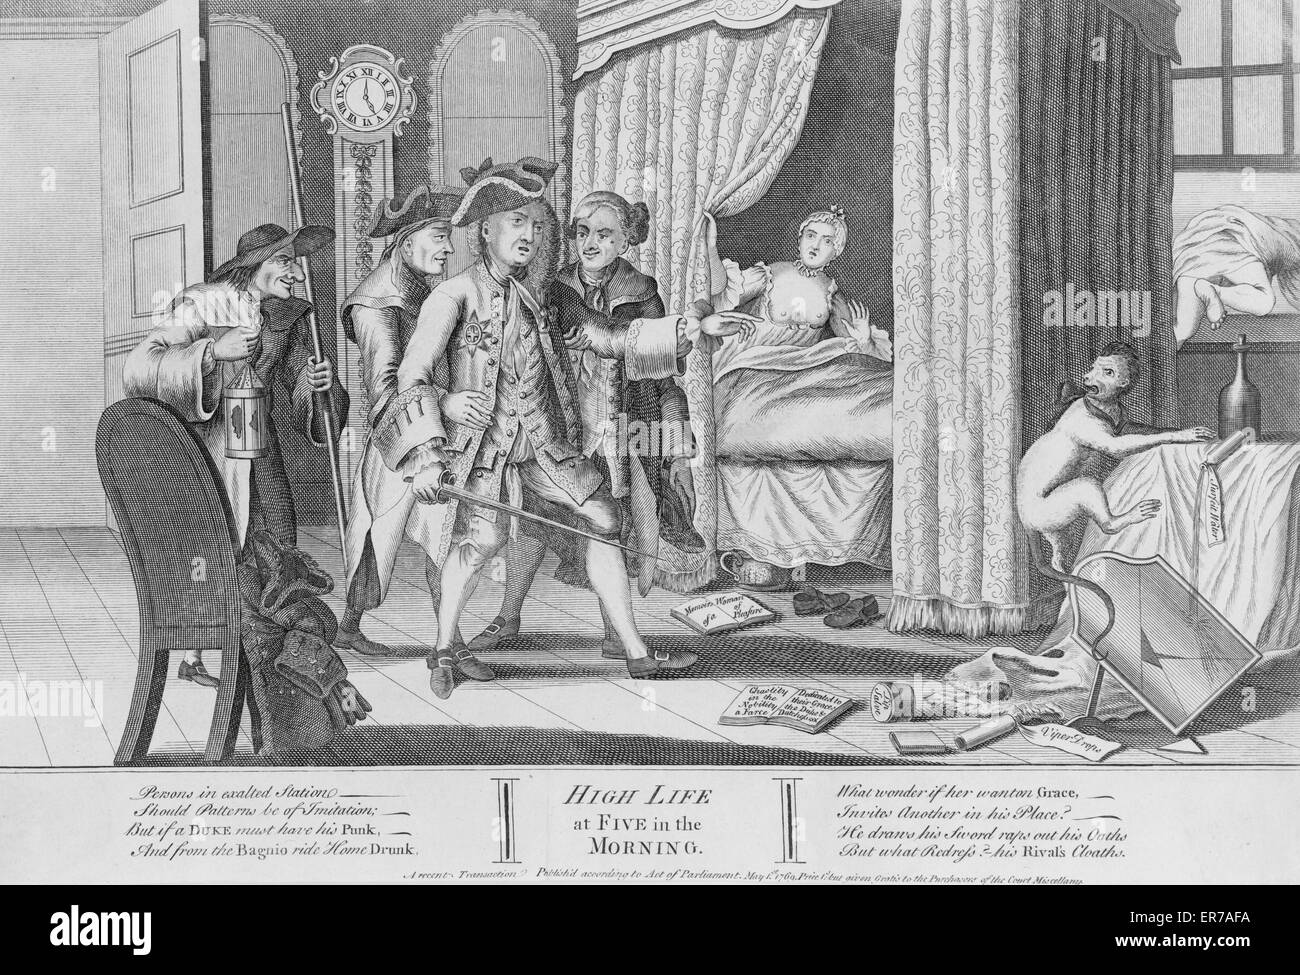 High life at five in the morning. Print shows an interior view of a room; a duke has arrived home drunk at 5 a.m. - Stock Image